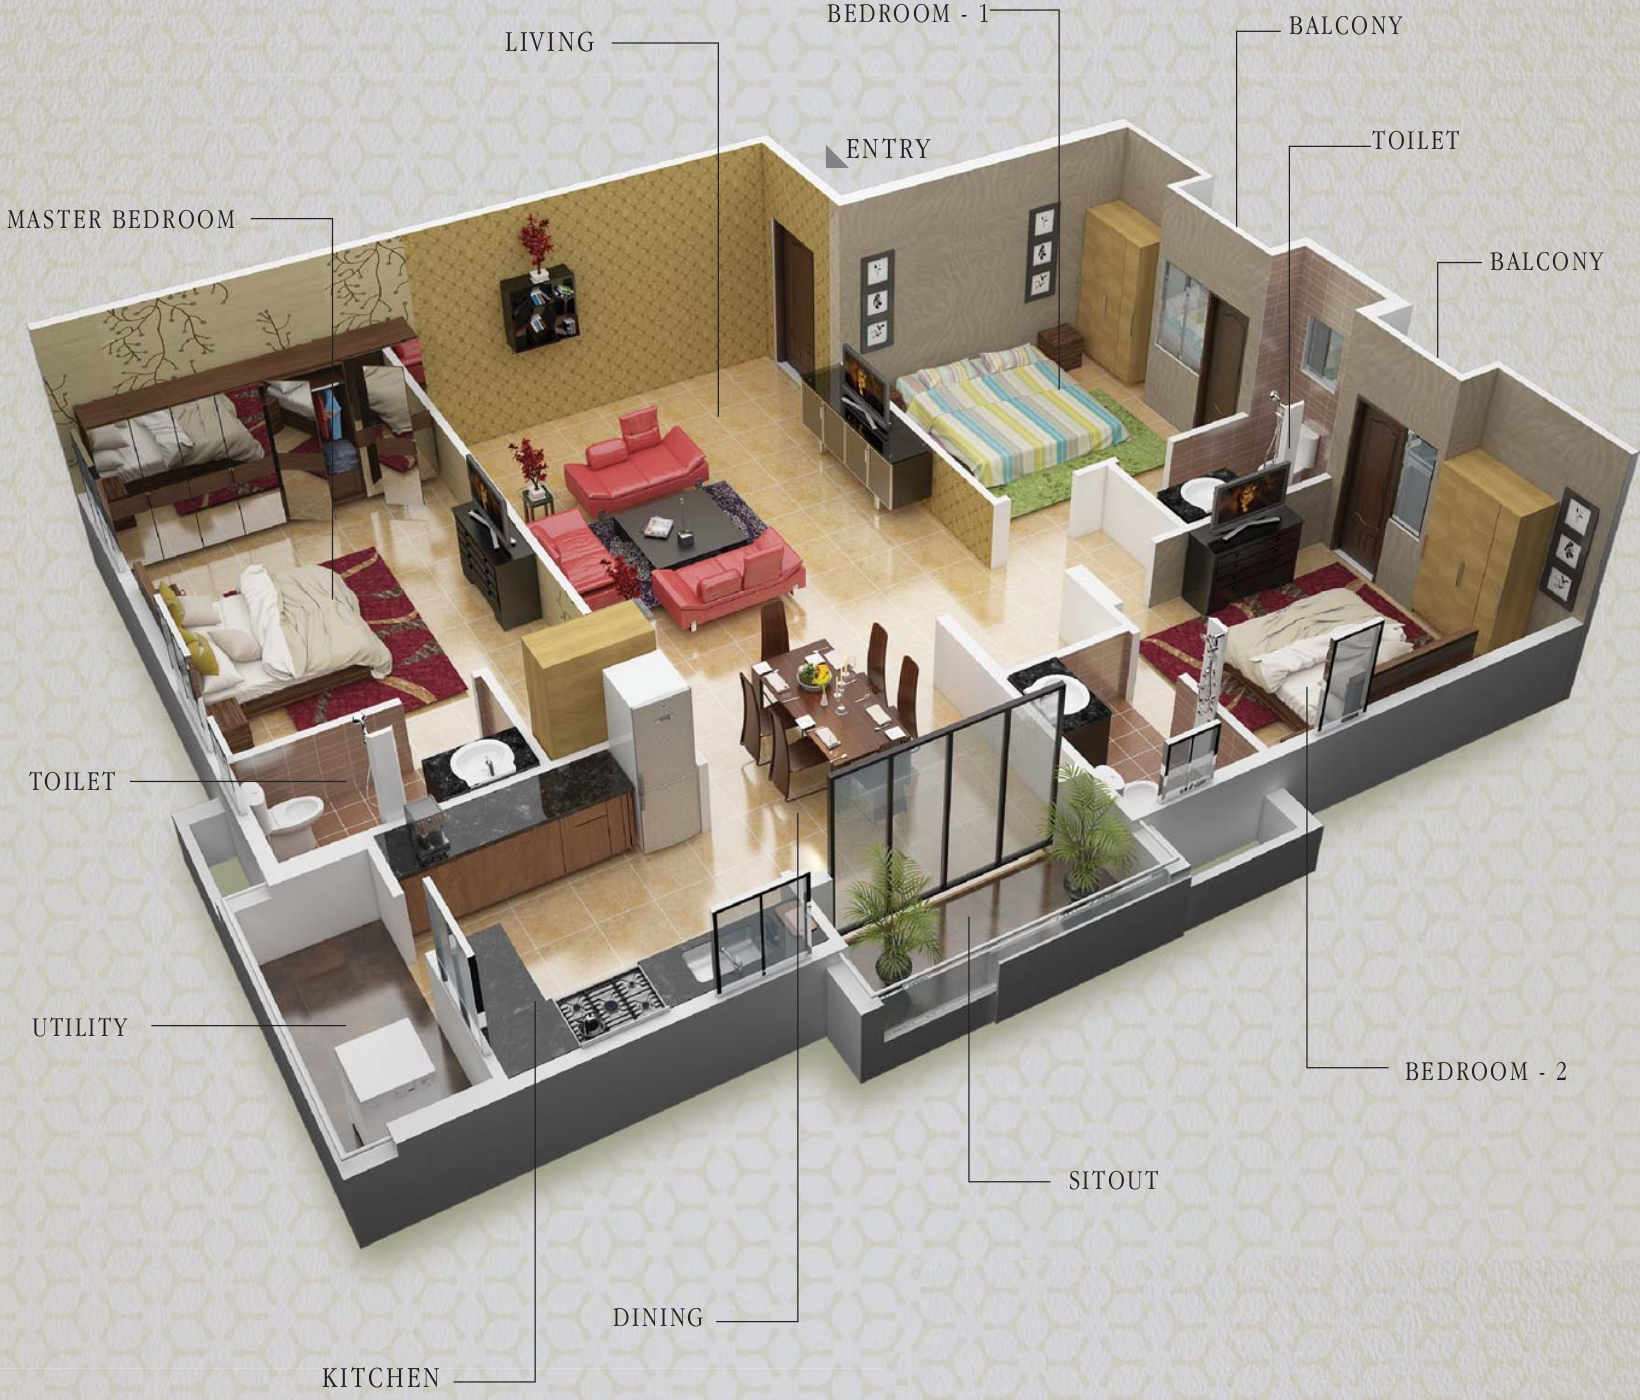 3d house plans indian style north facing escortsea for 2 bedroom house plans indian style